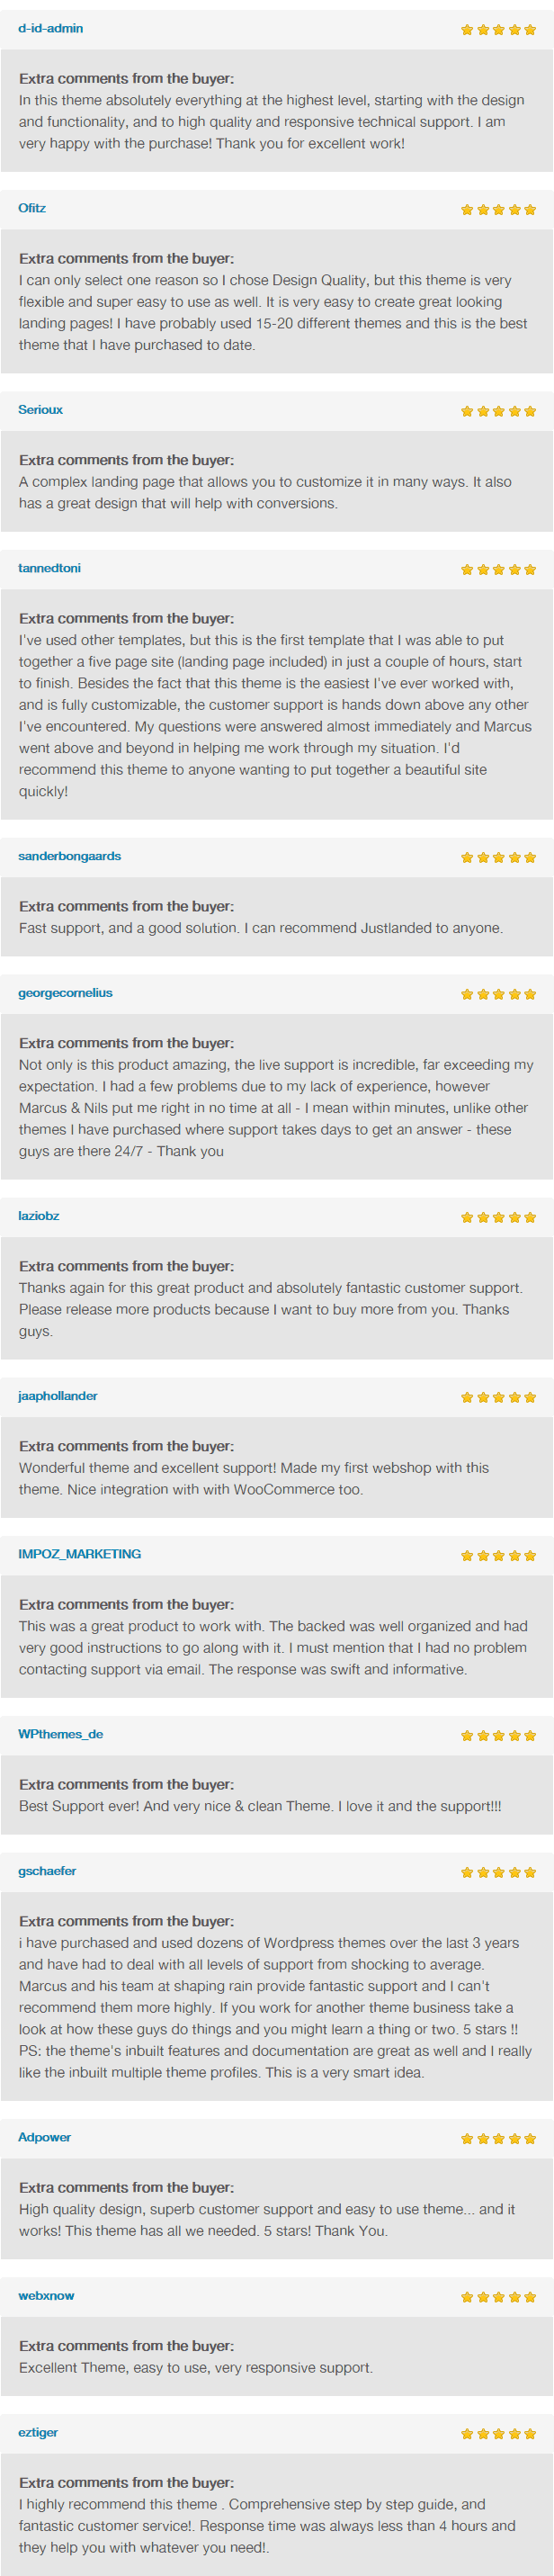 JustLanded for WordPress Customer Reviews Part 2